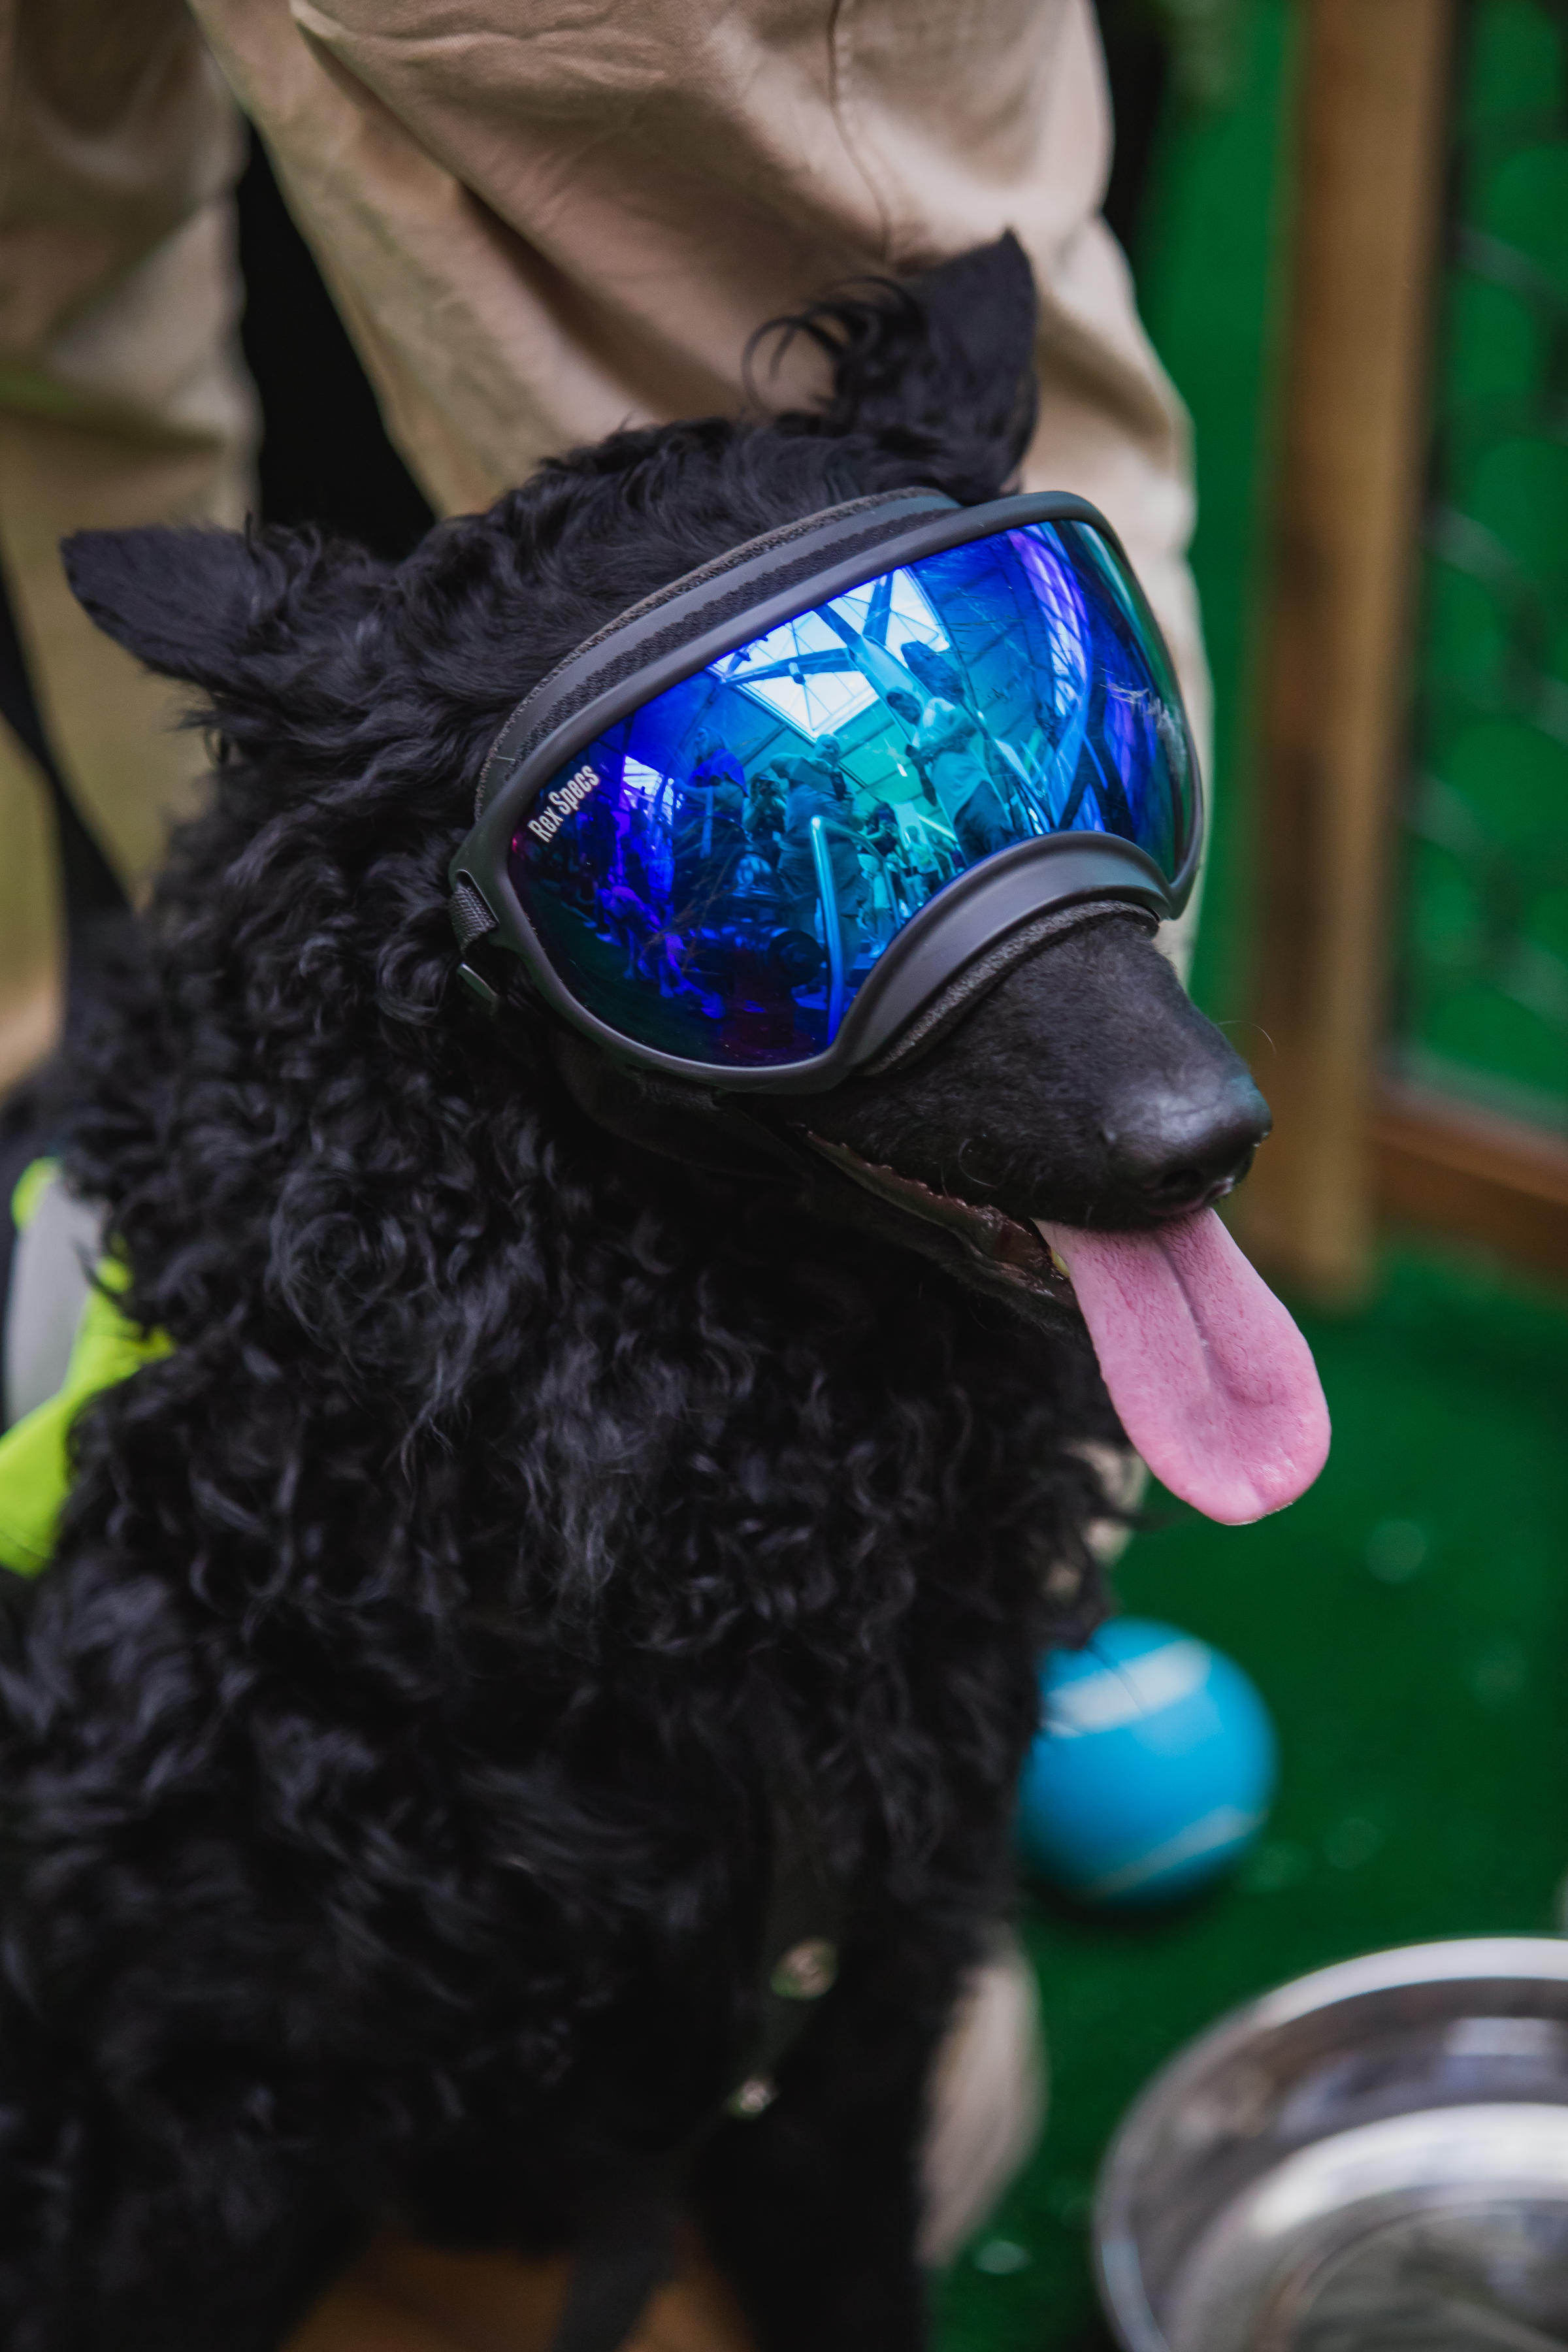 Pilot the dog, part of YVR's wildlife team wearing cool blue dog goggles